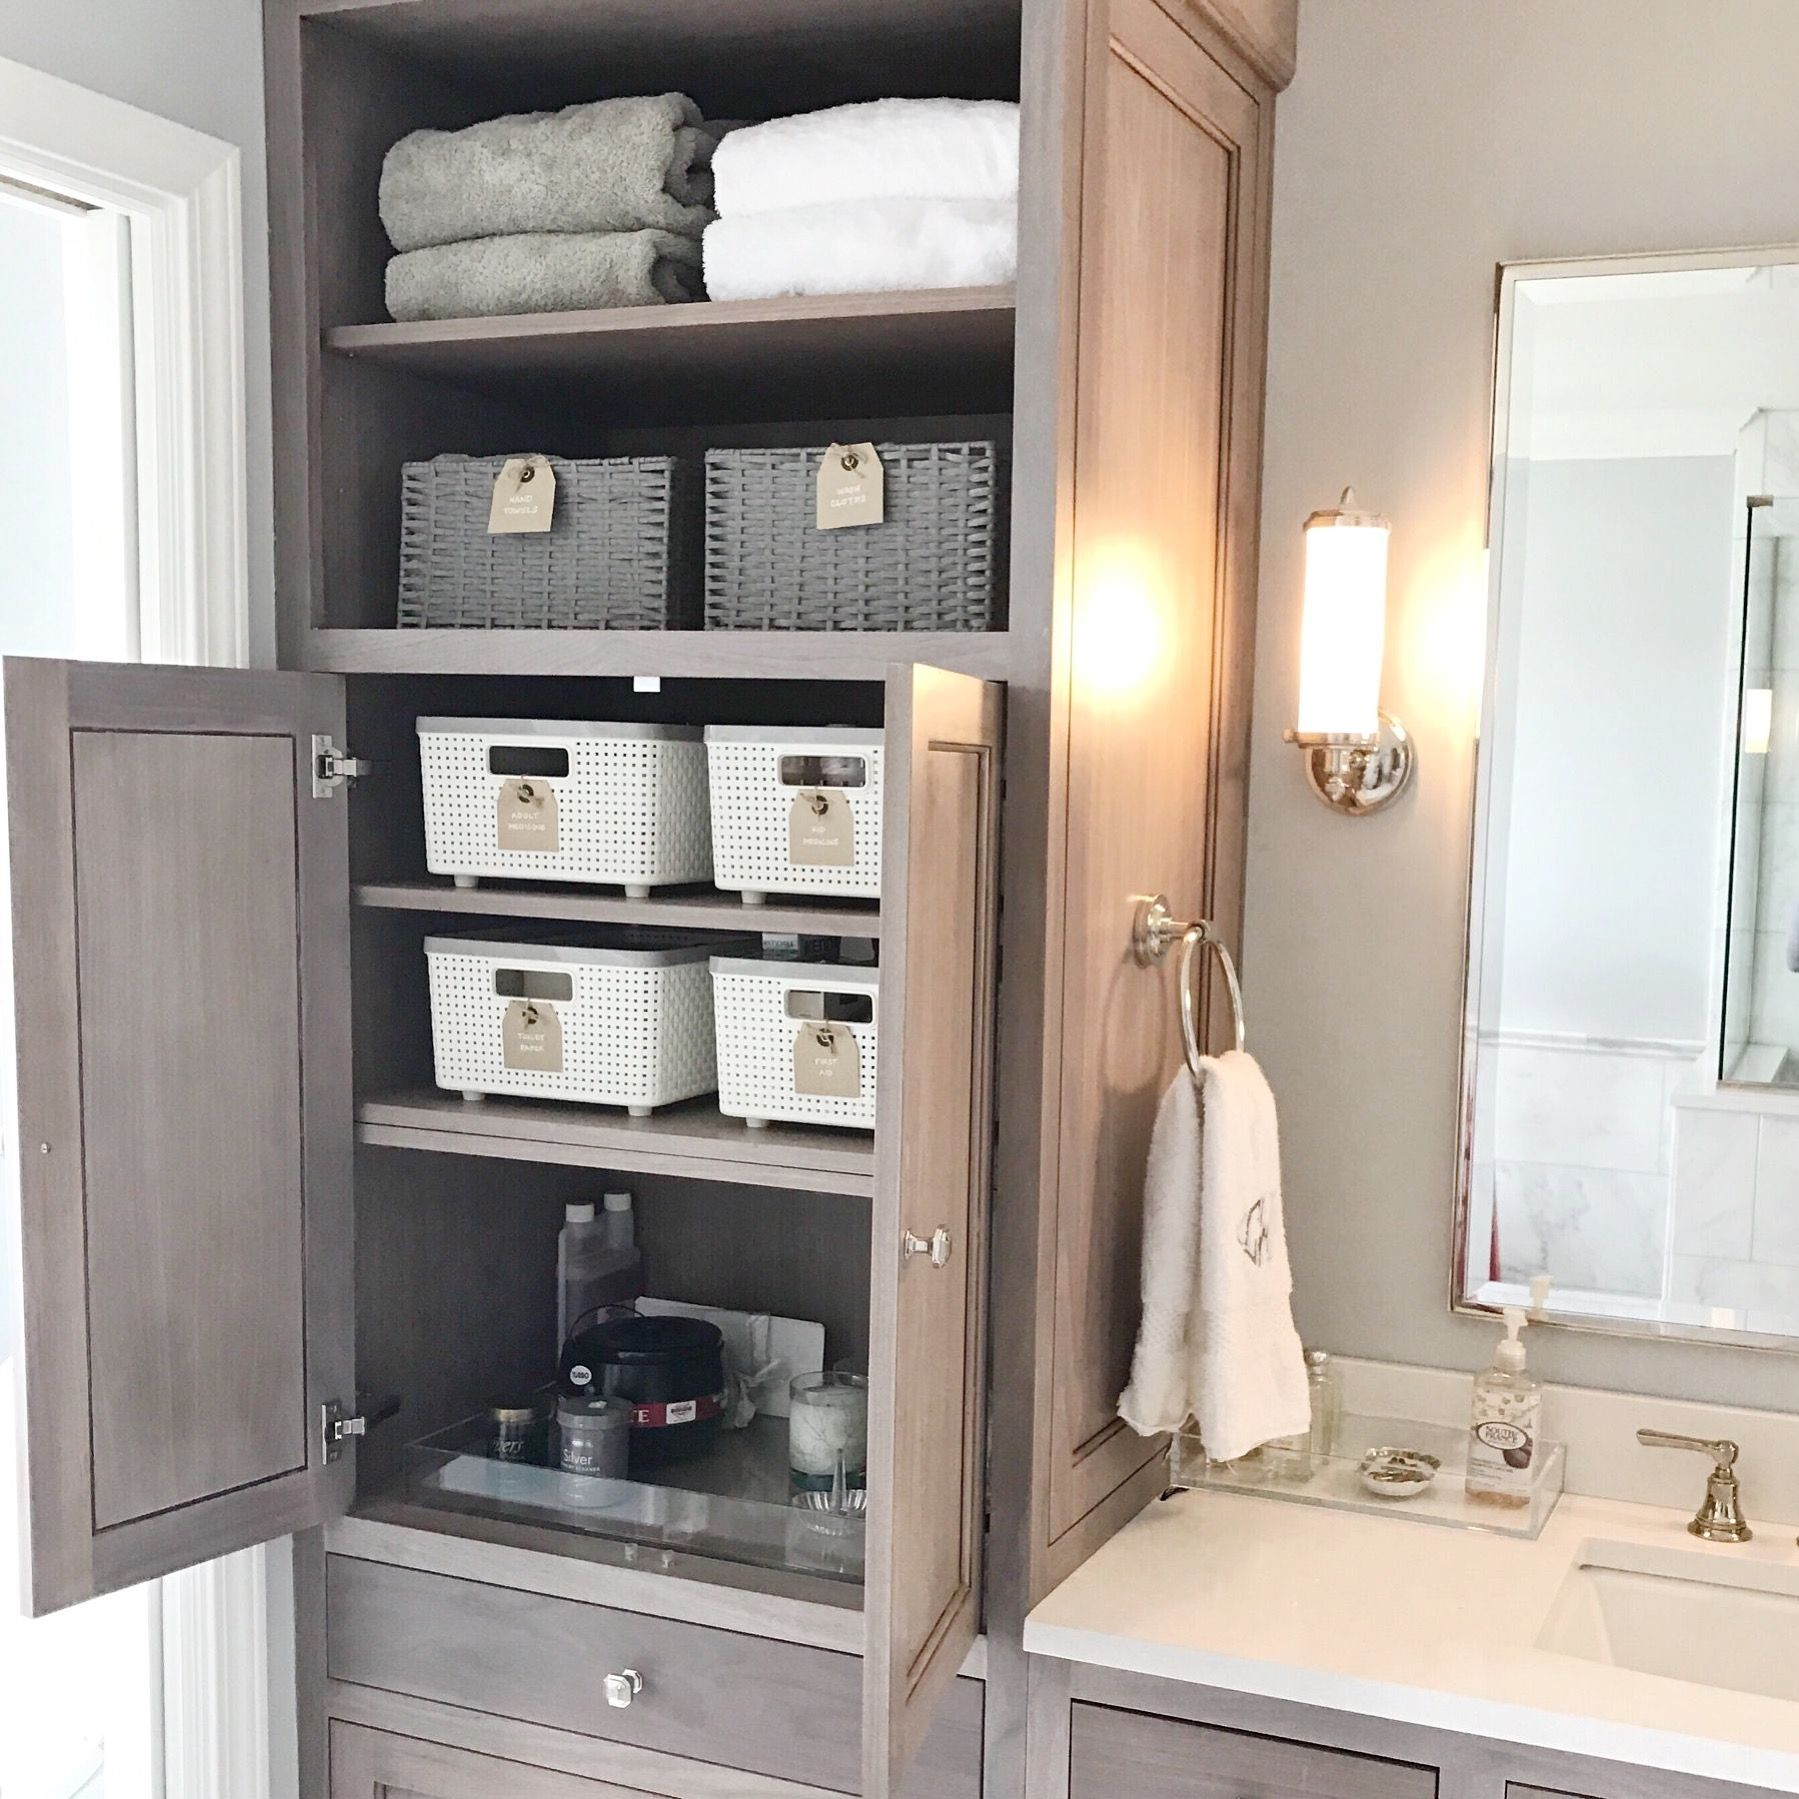 Neat Method Bathrooms Modern Bathrooms White Bathrooms Bathroom Organization Bathr Small Bathroom Organization Bathroom Organisation Bathroom Organization